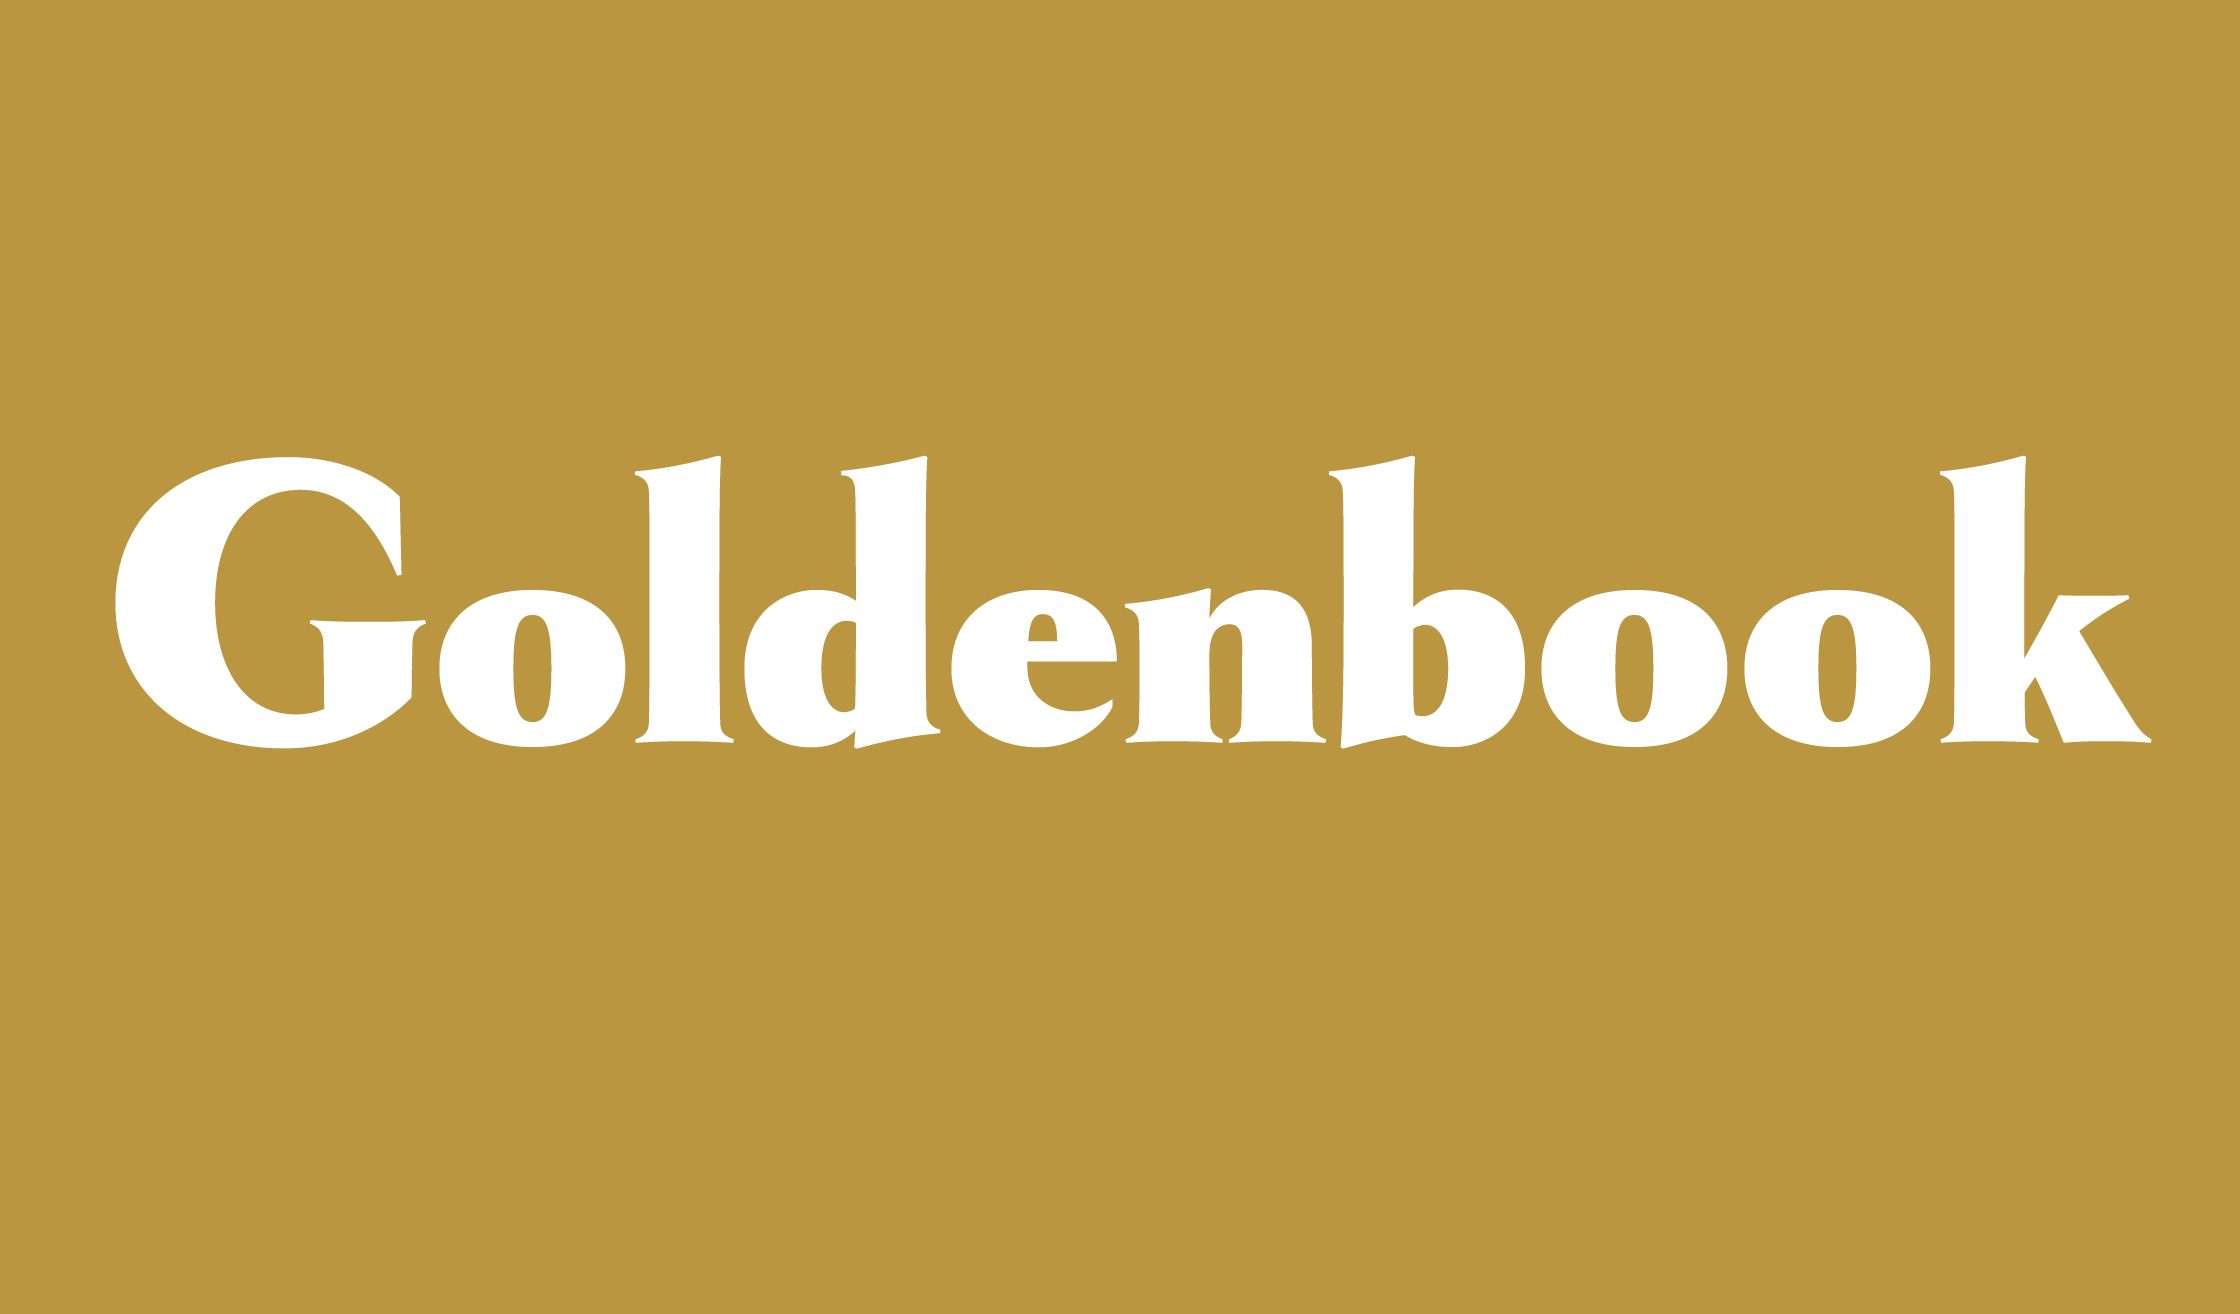 Goldenbook Banner Name 2240